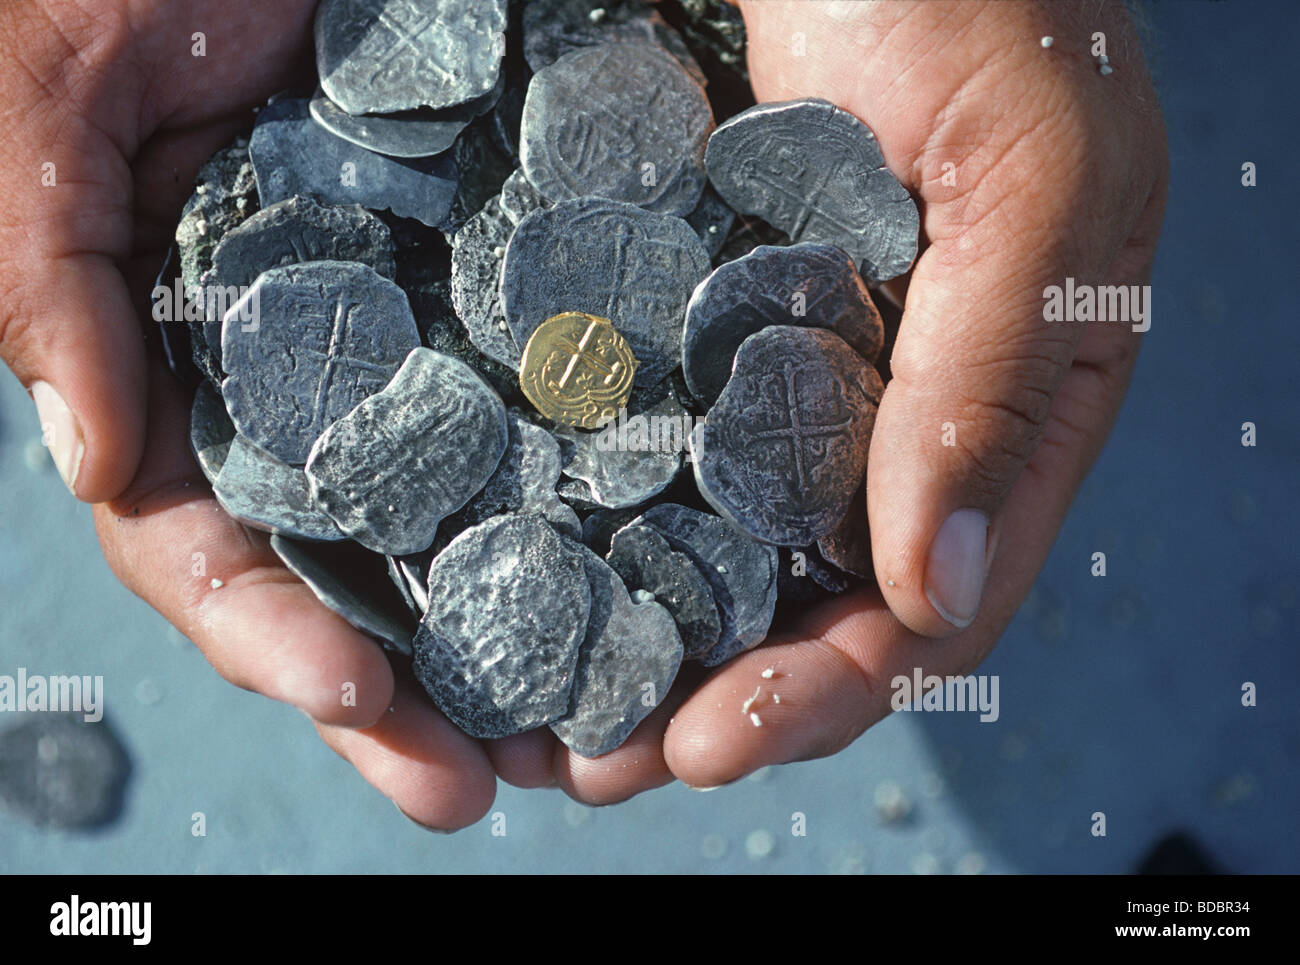 Doubloons recovered from the shipwreck Las Maravillas sunk in 1658 Bahamas  - Stock Image